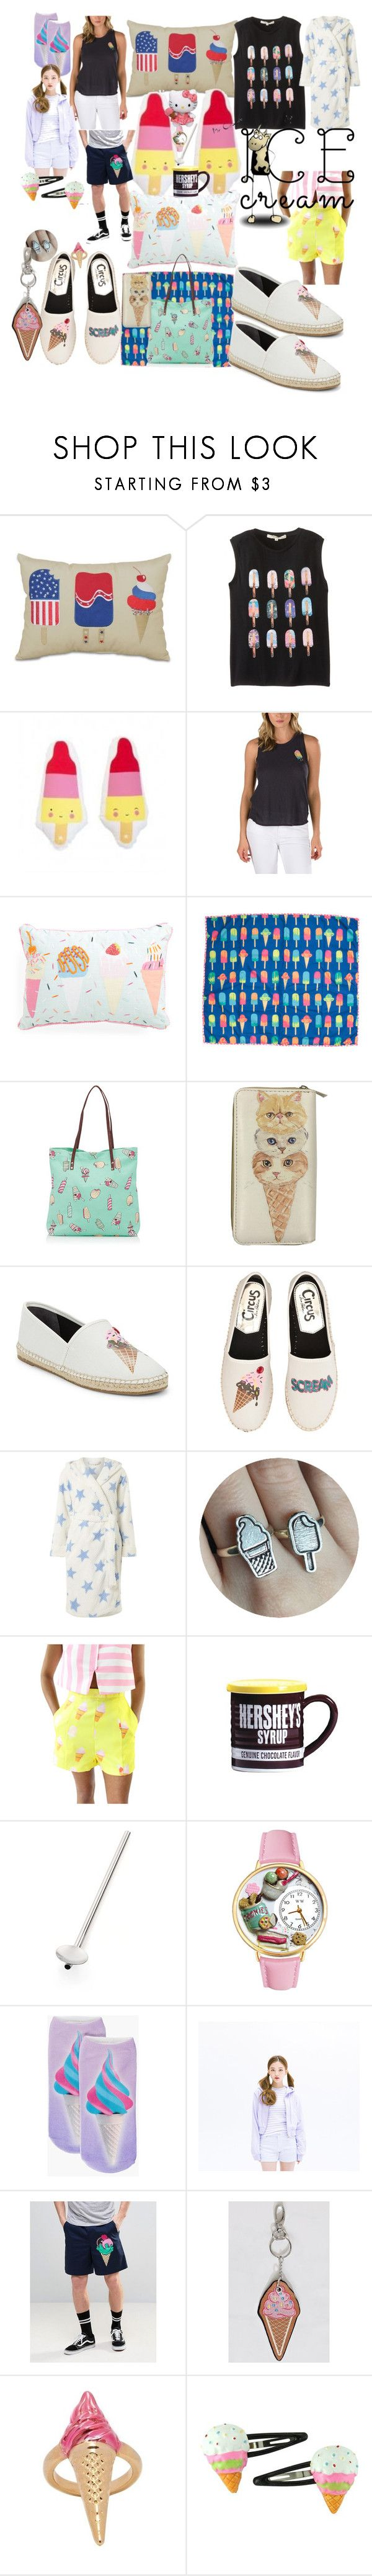 """""""I can finally hear the ice cream man"""" by lerp ❤ liked on Polyvore featuring Arlee Home Fashions, A Little Lovely Company, Vans, Disney, Circus by Sam Edelman, Dorothy Perkins, Hello Kitty, Fitz & Floyd, Crate and Barrel and Boohoo"""